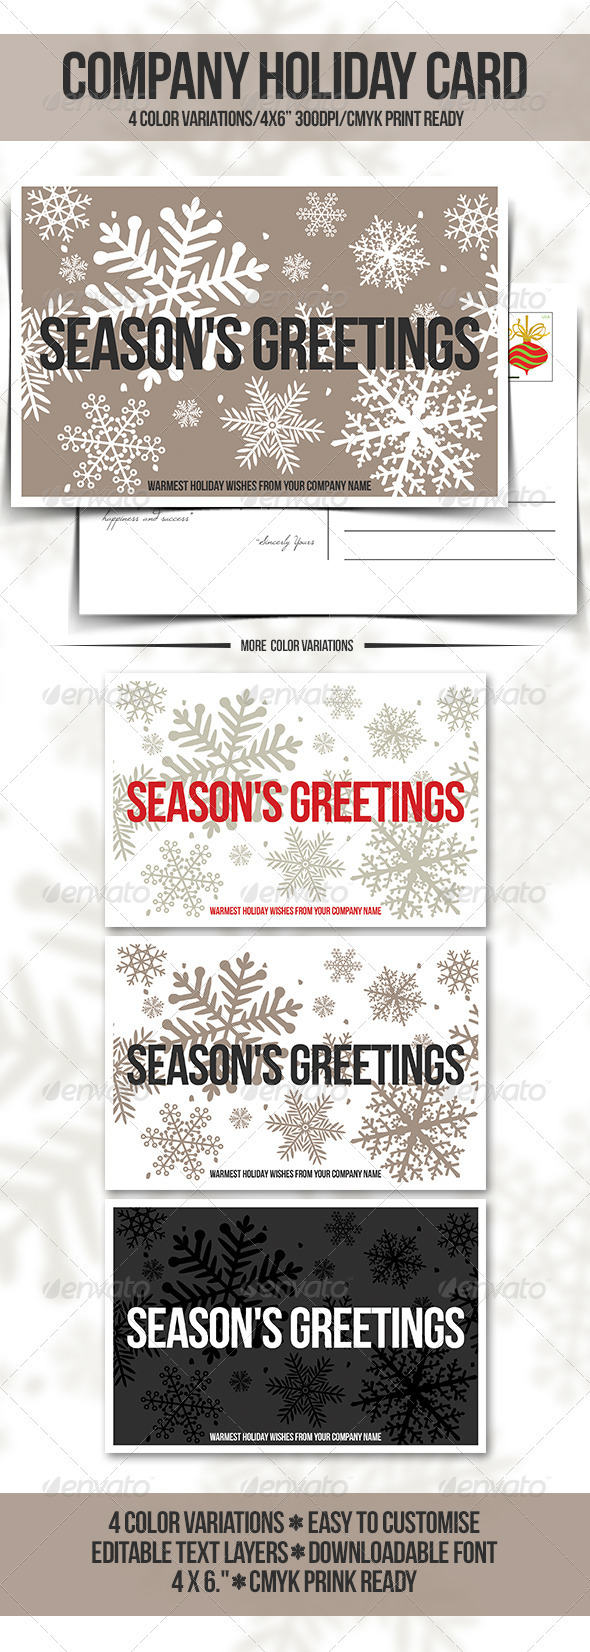 GraphicRiver Company Holiday Greeting Card Postcard 3554537